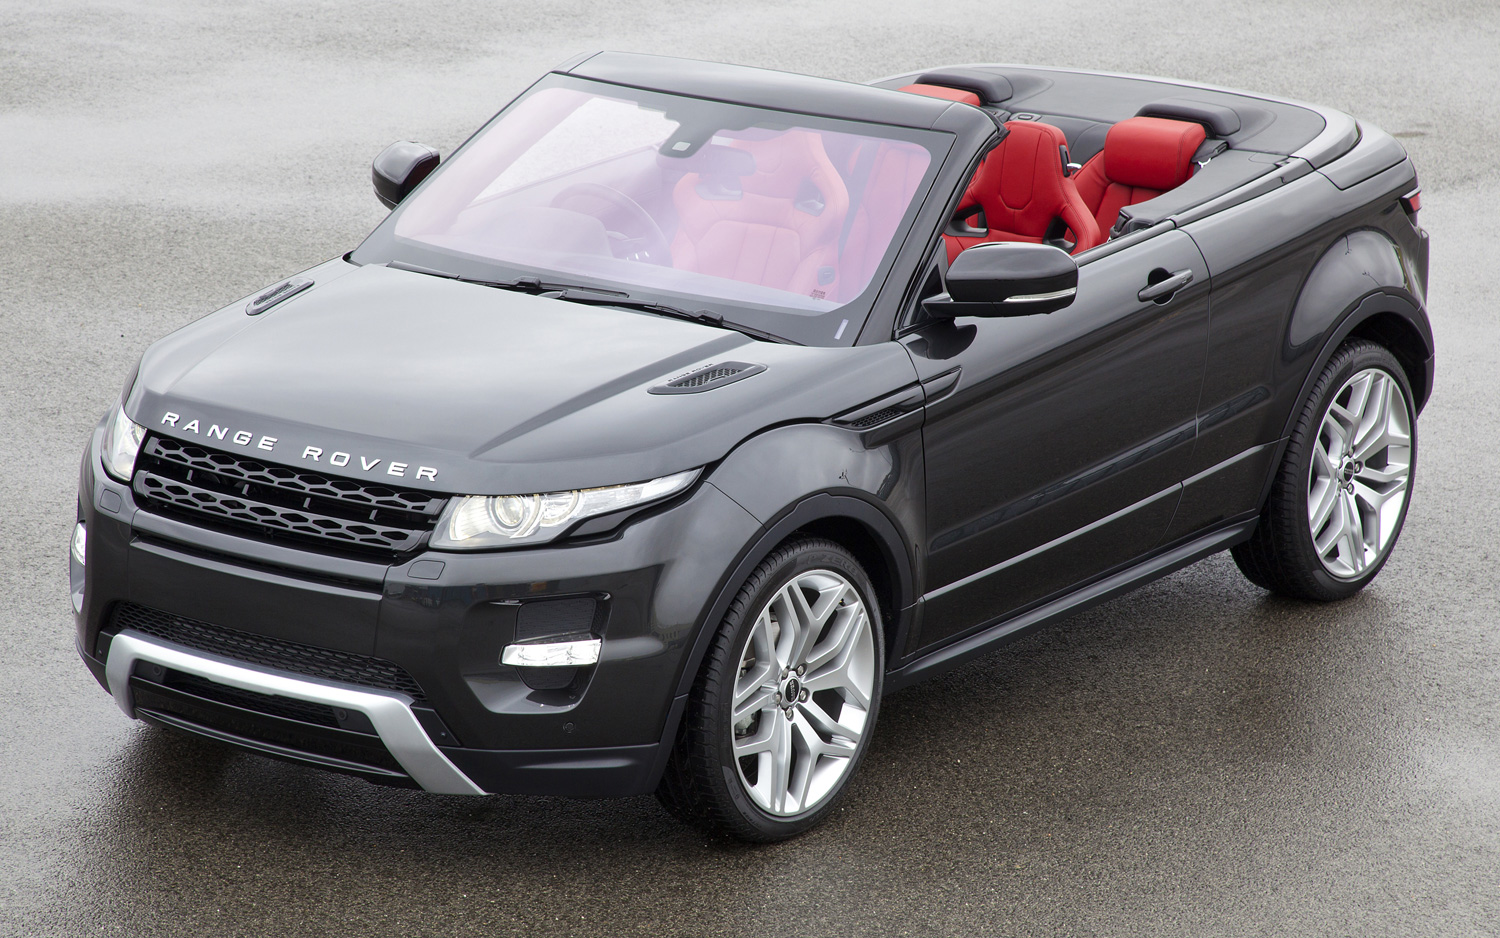 range-rover-evoque-convertible-concept-front-side-view